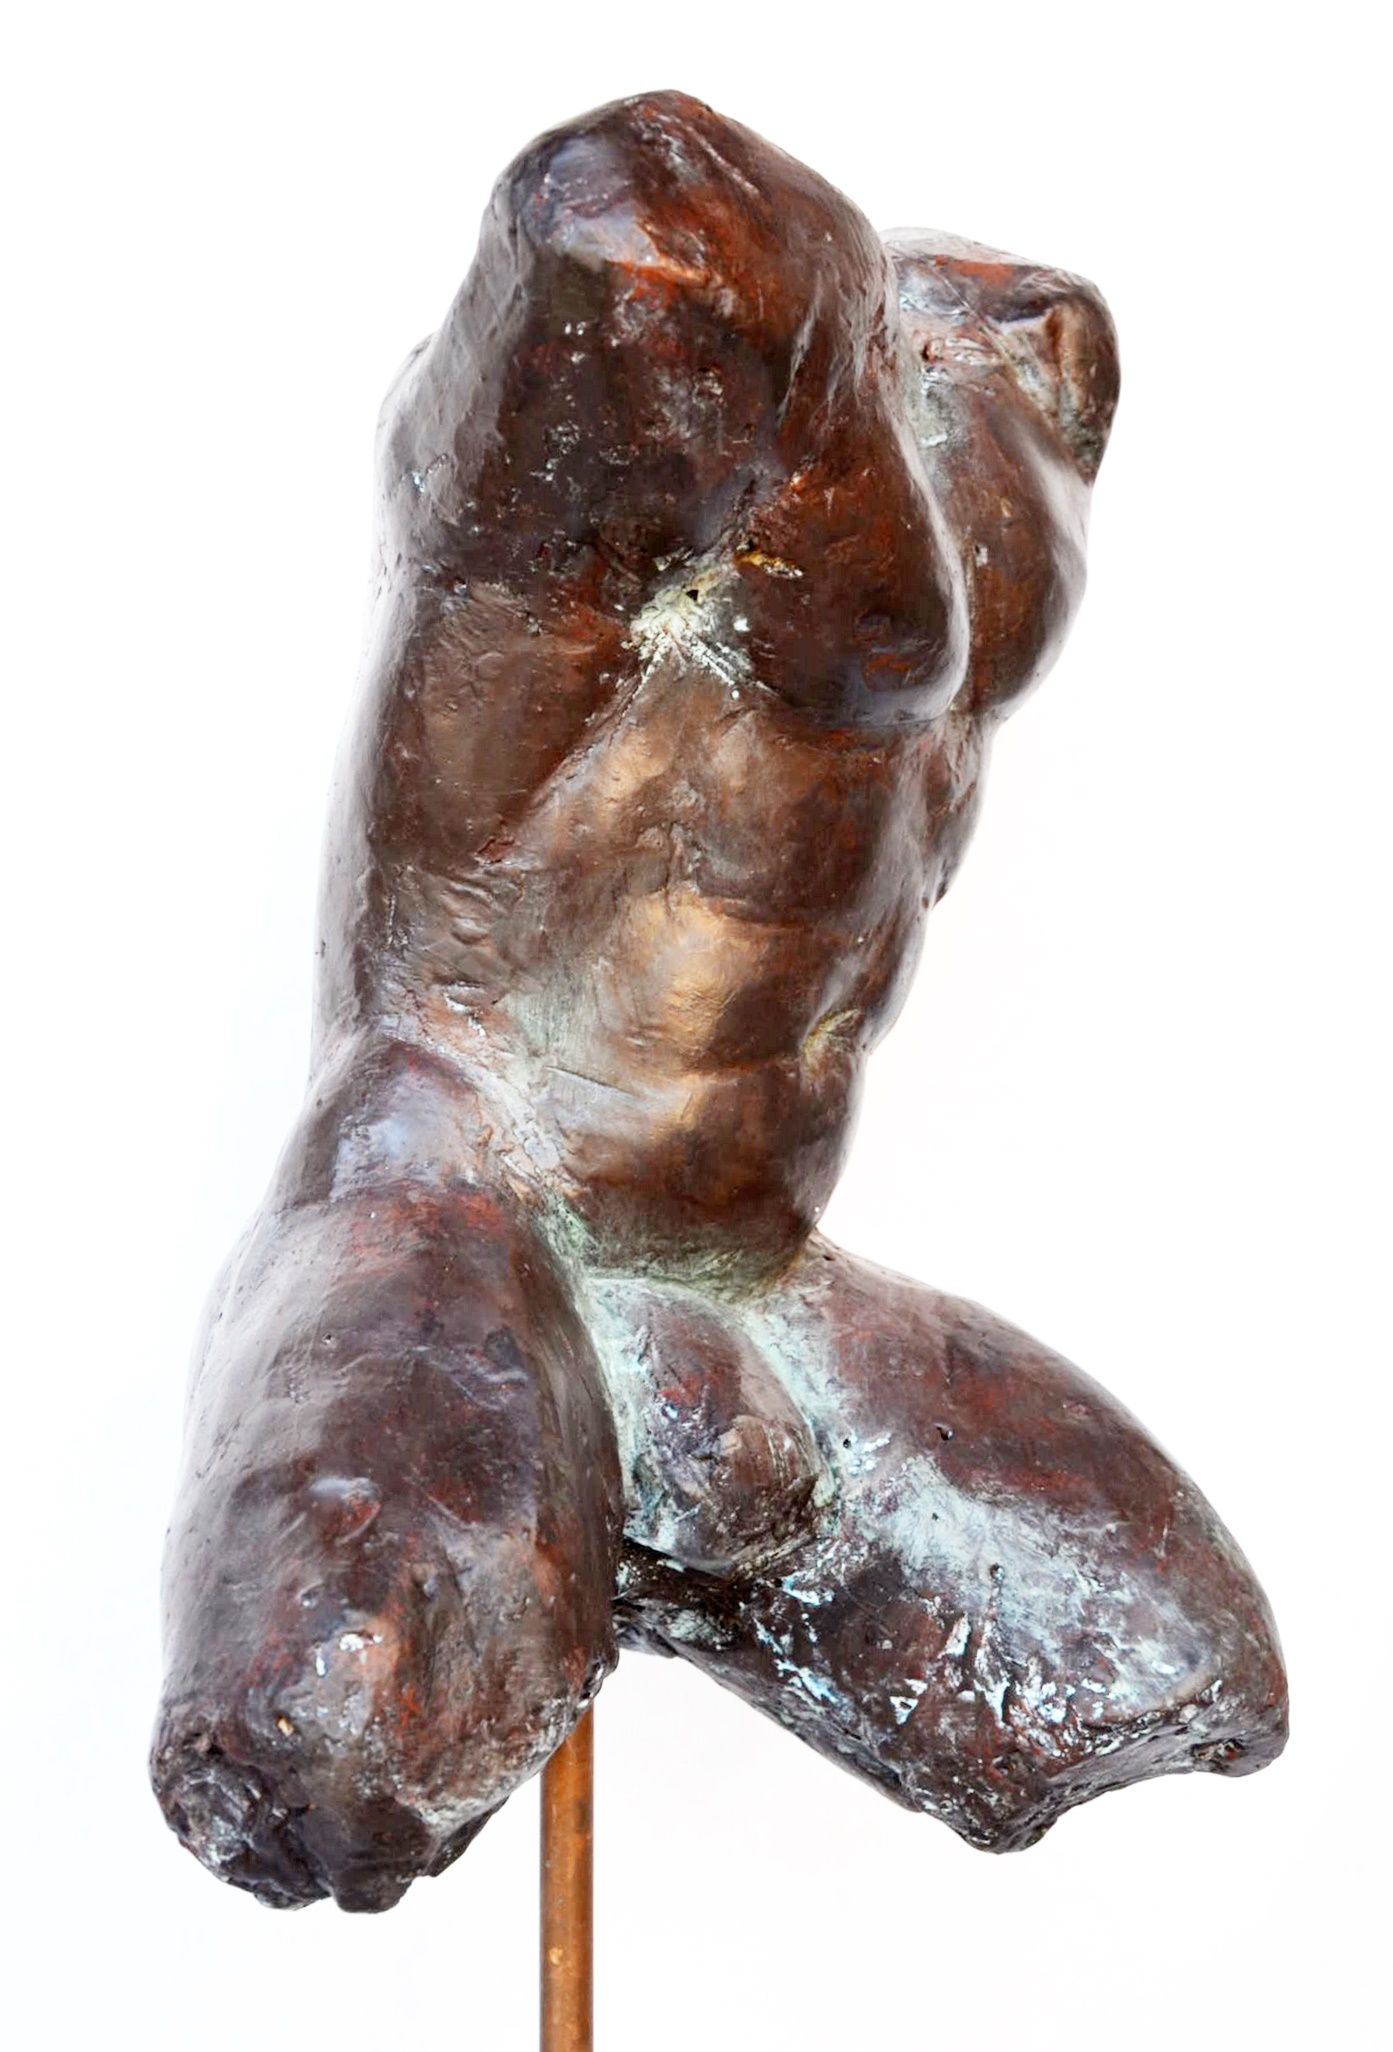 Impressionist man torso III,Yann Guillon,Sculpture, detail 2